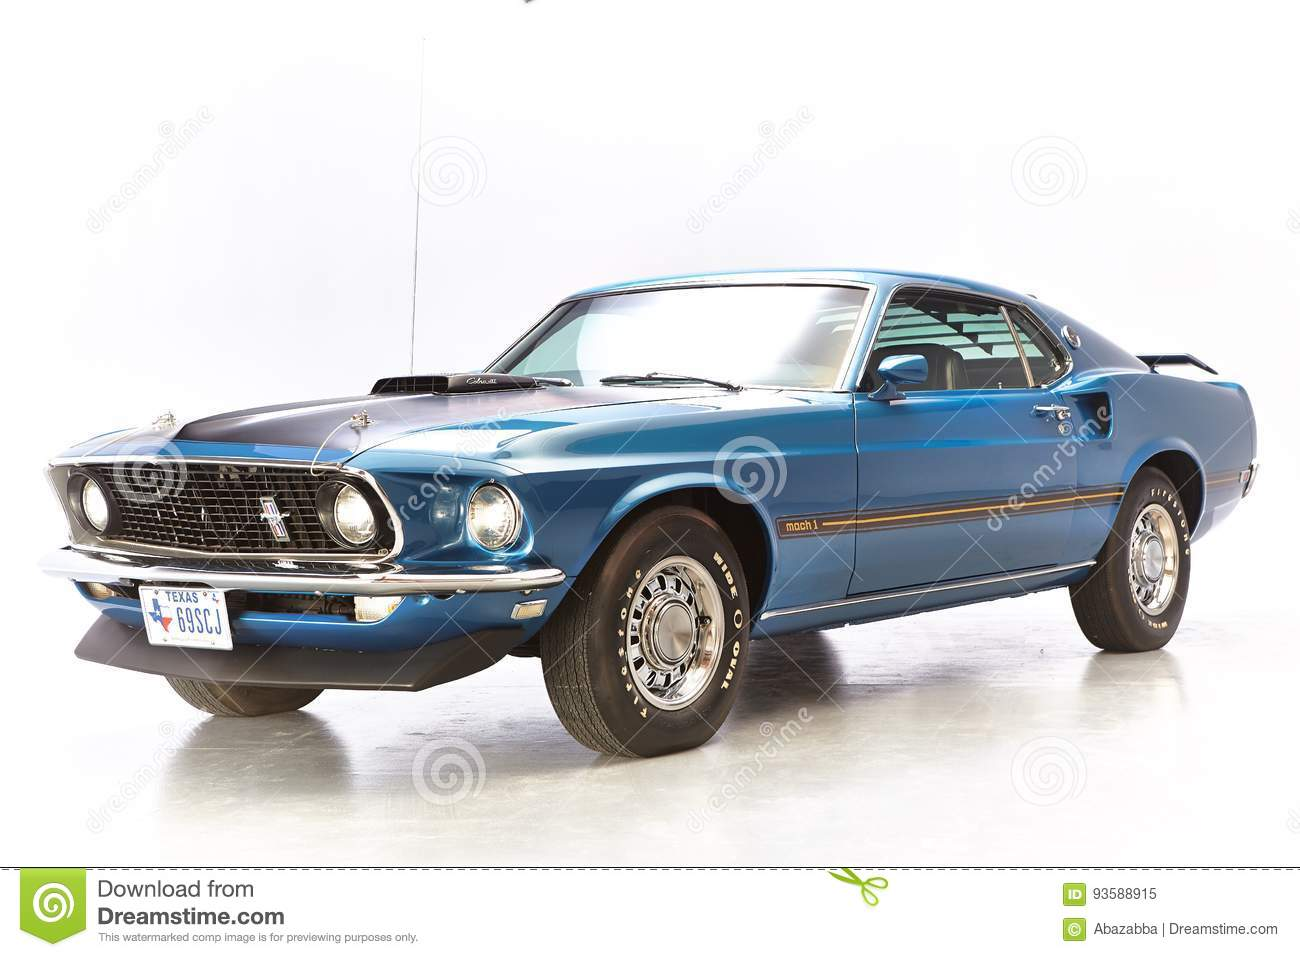 Ford Mustang Stock Photos Download 4807 Images 1969 Hatchback Blue Mach One On White Background 1 428 Scj